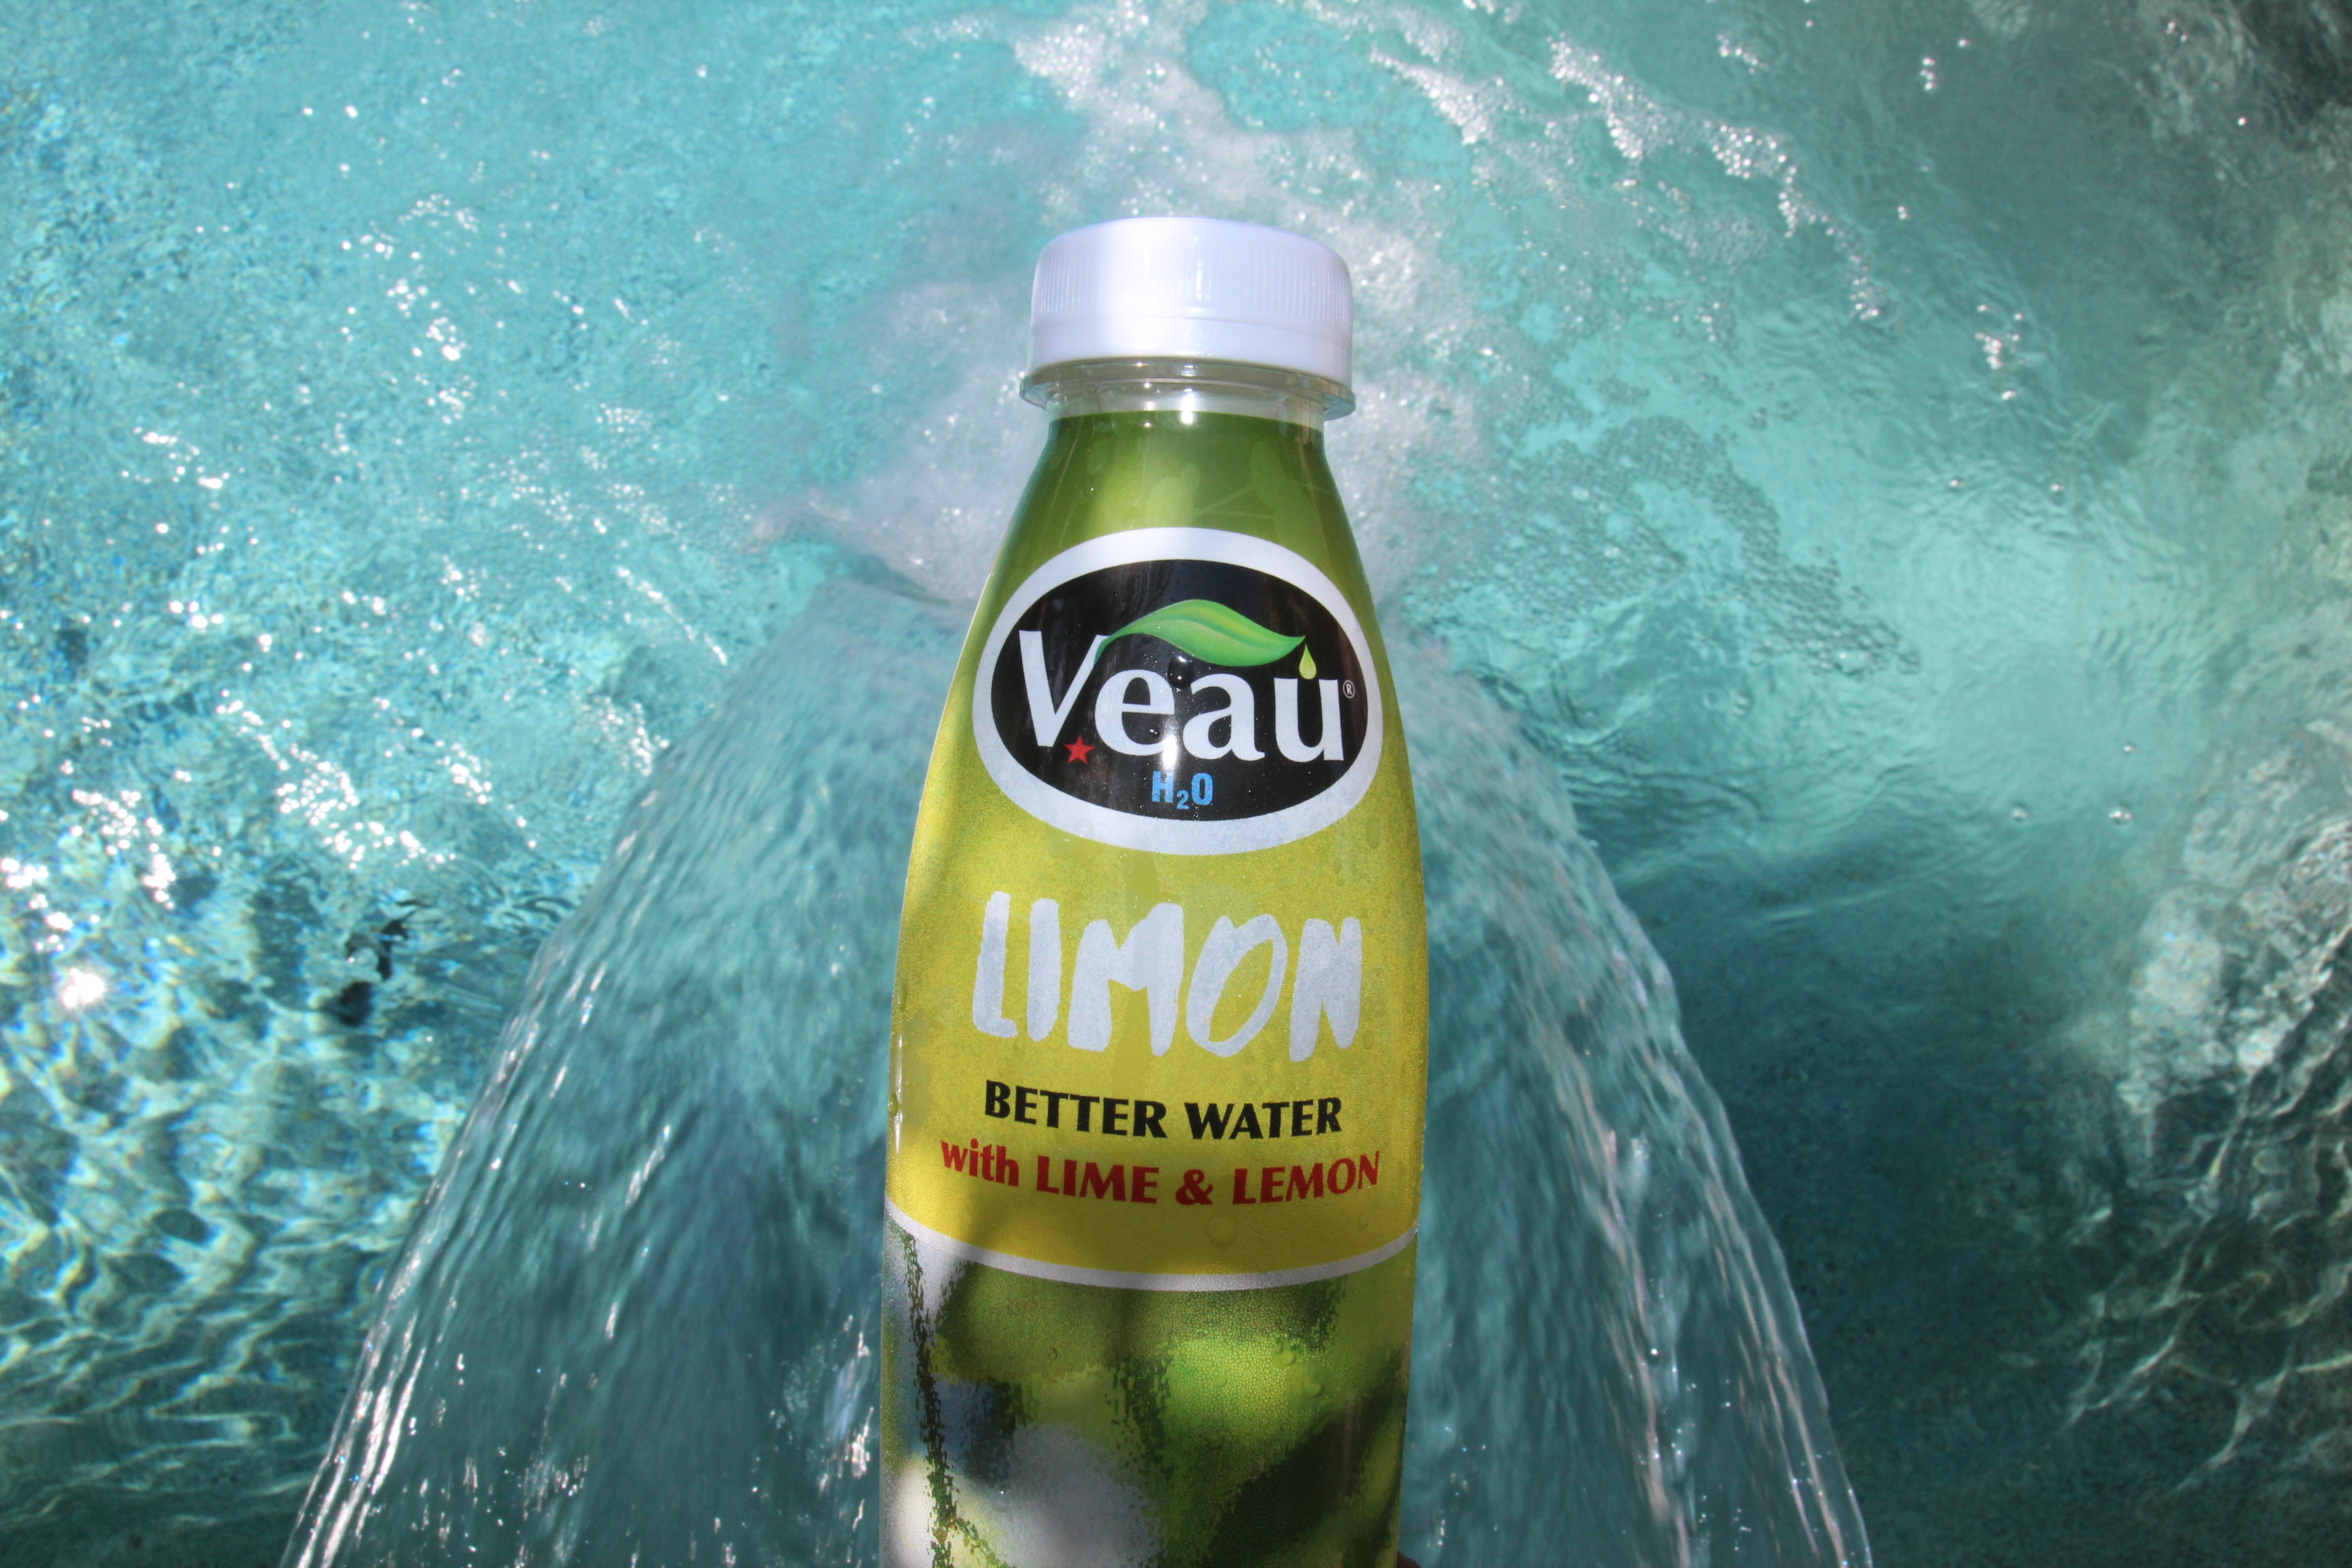 6.Veau-Limon-Pool-Water